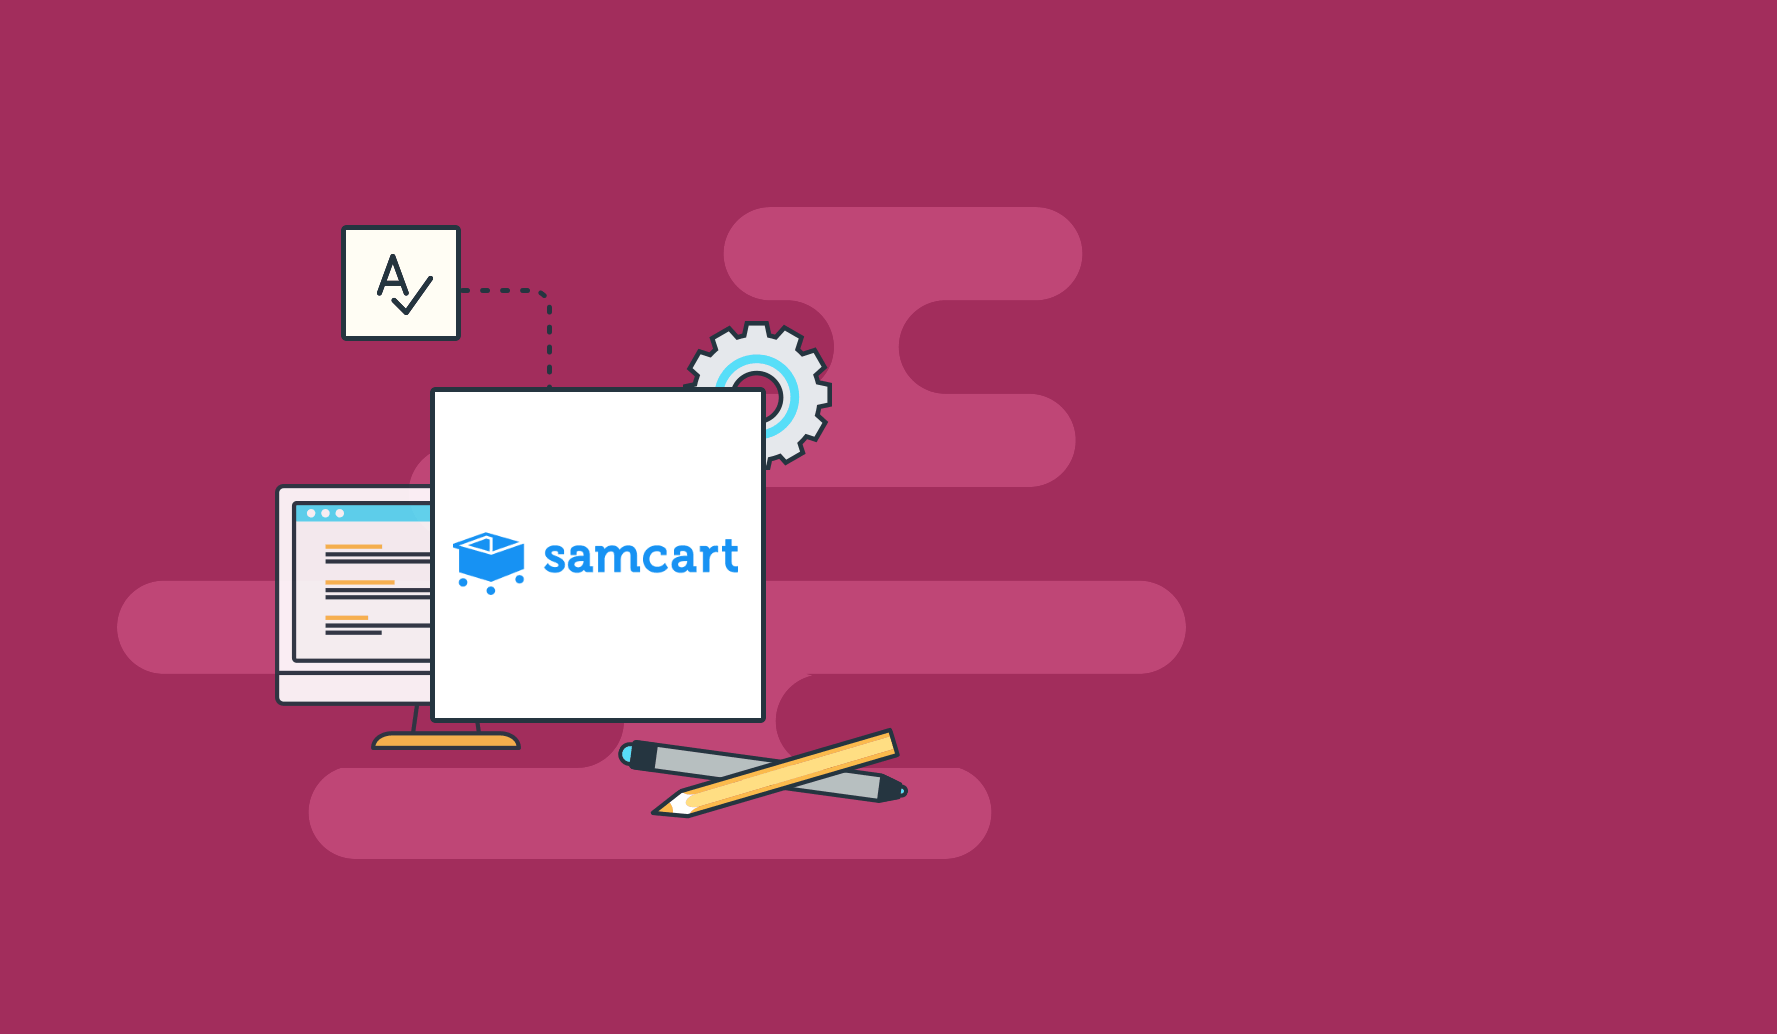 Free Giveaway Without Survey Landing Page Software Samcart